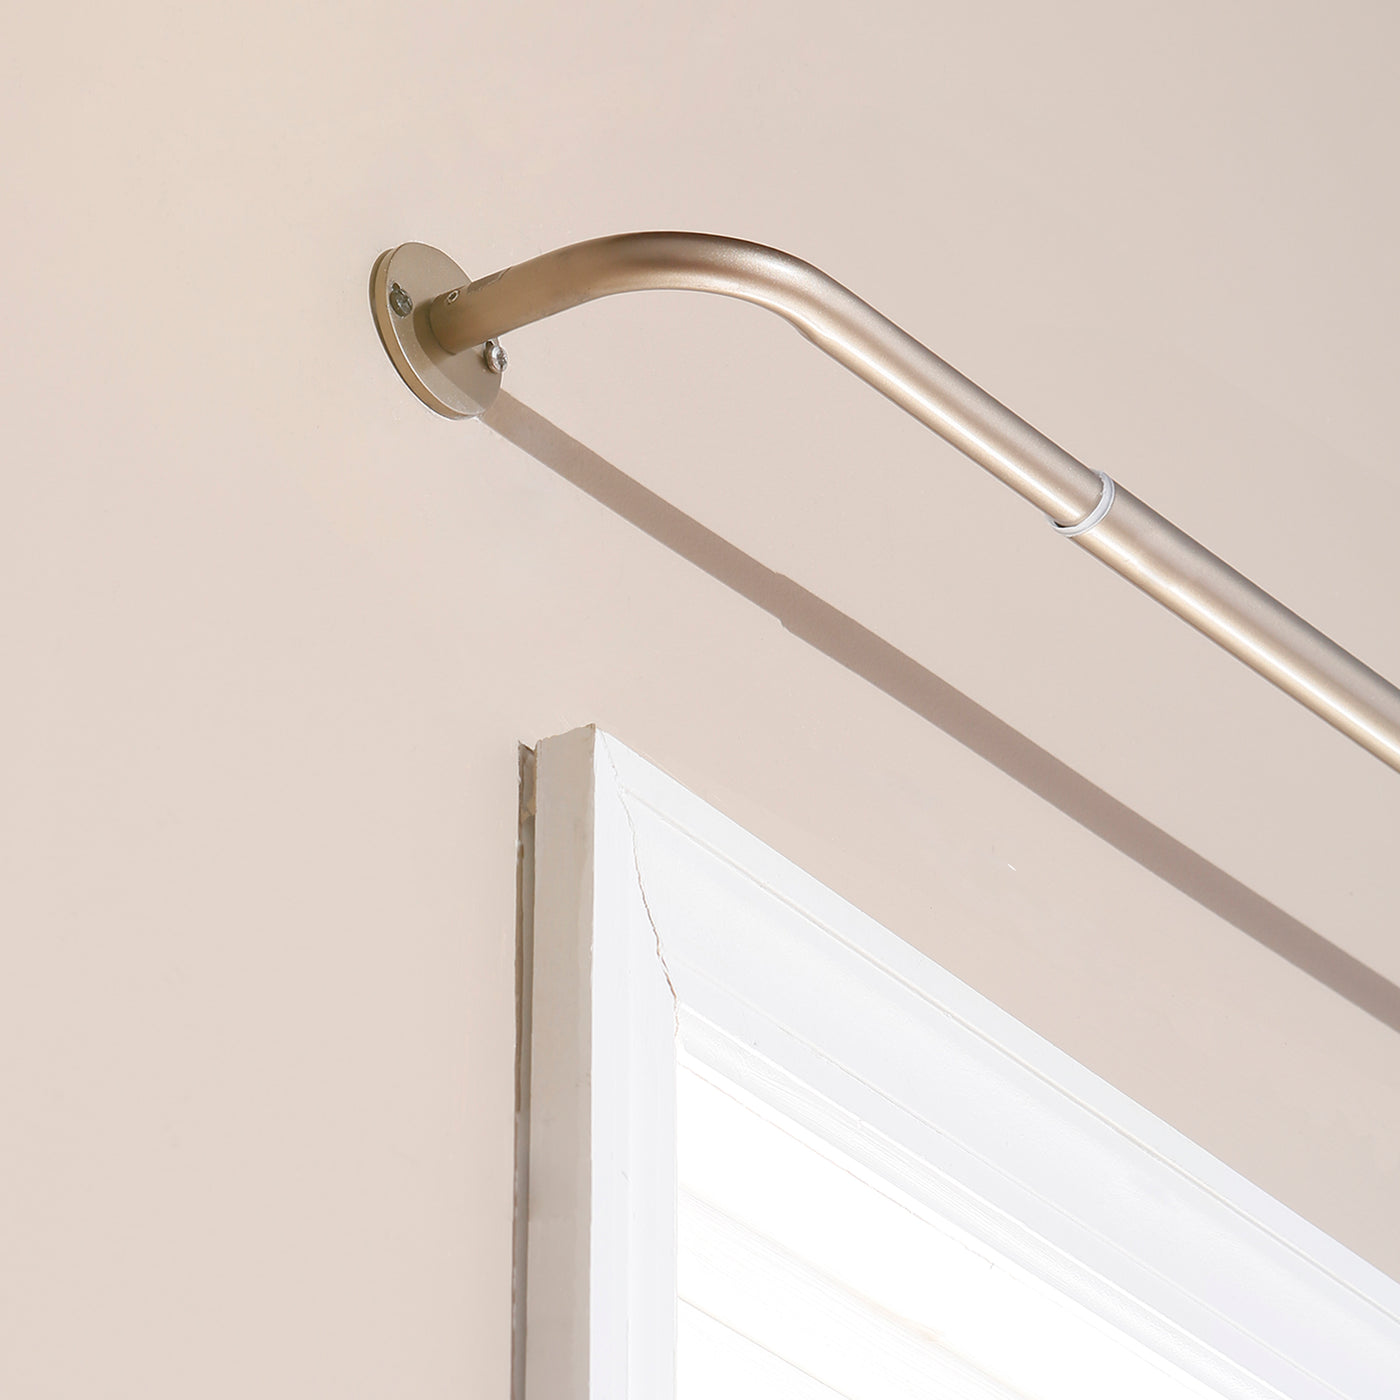 uMIXm Wraparound Blackout Curtain Rod